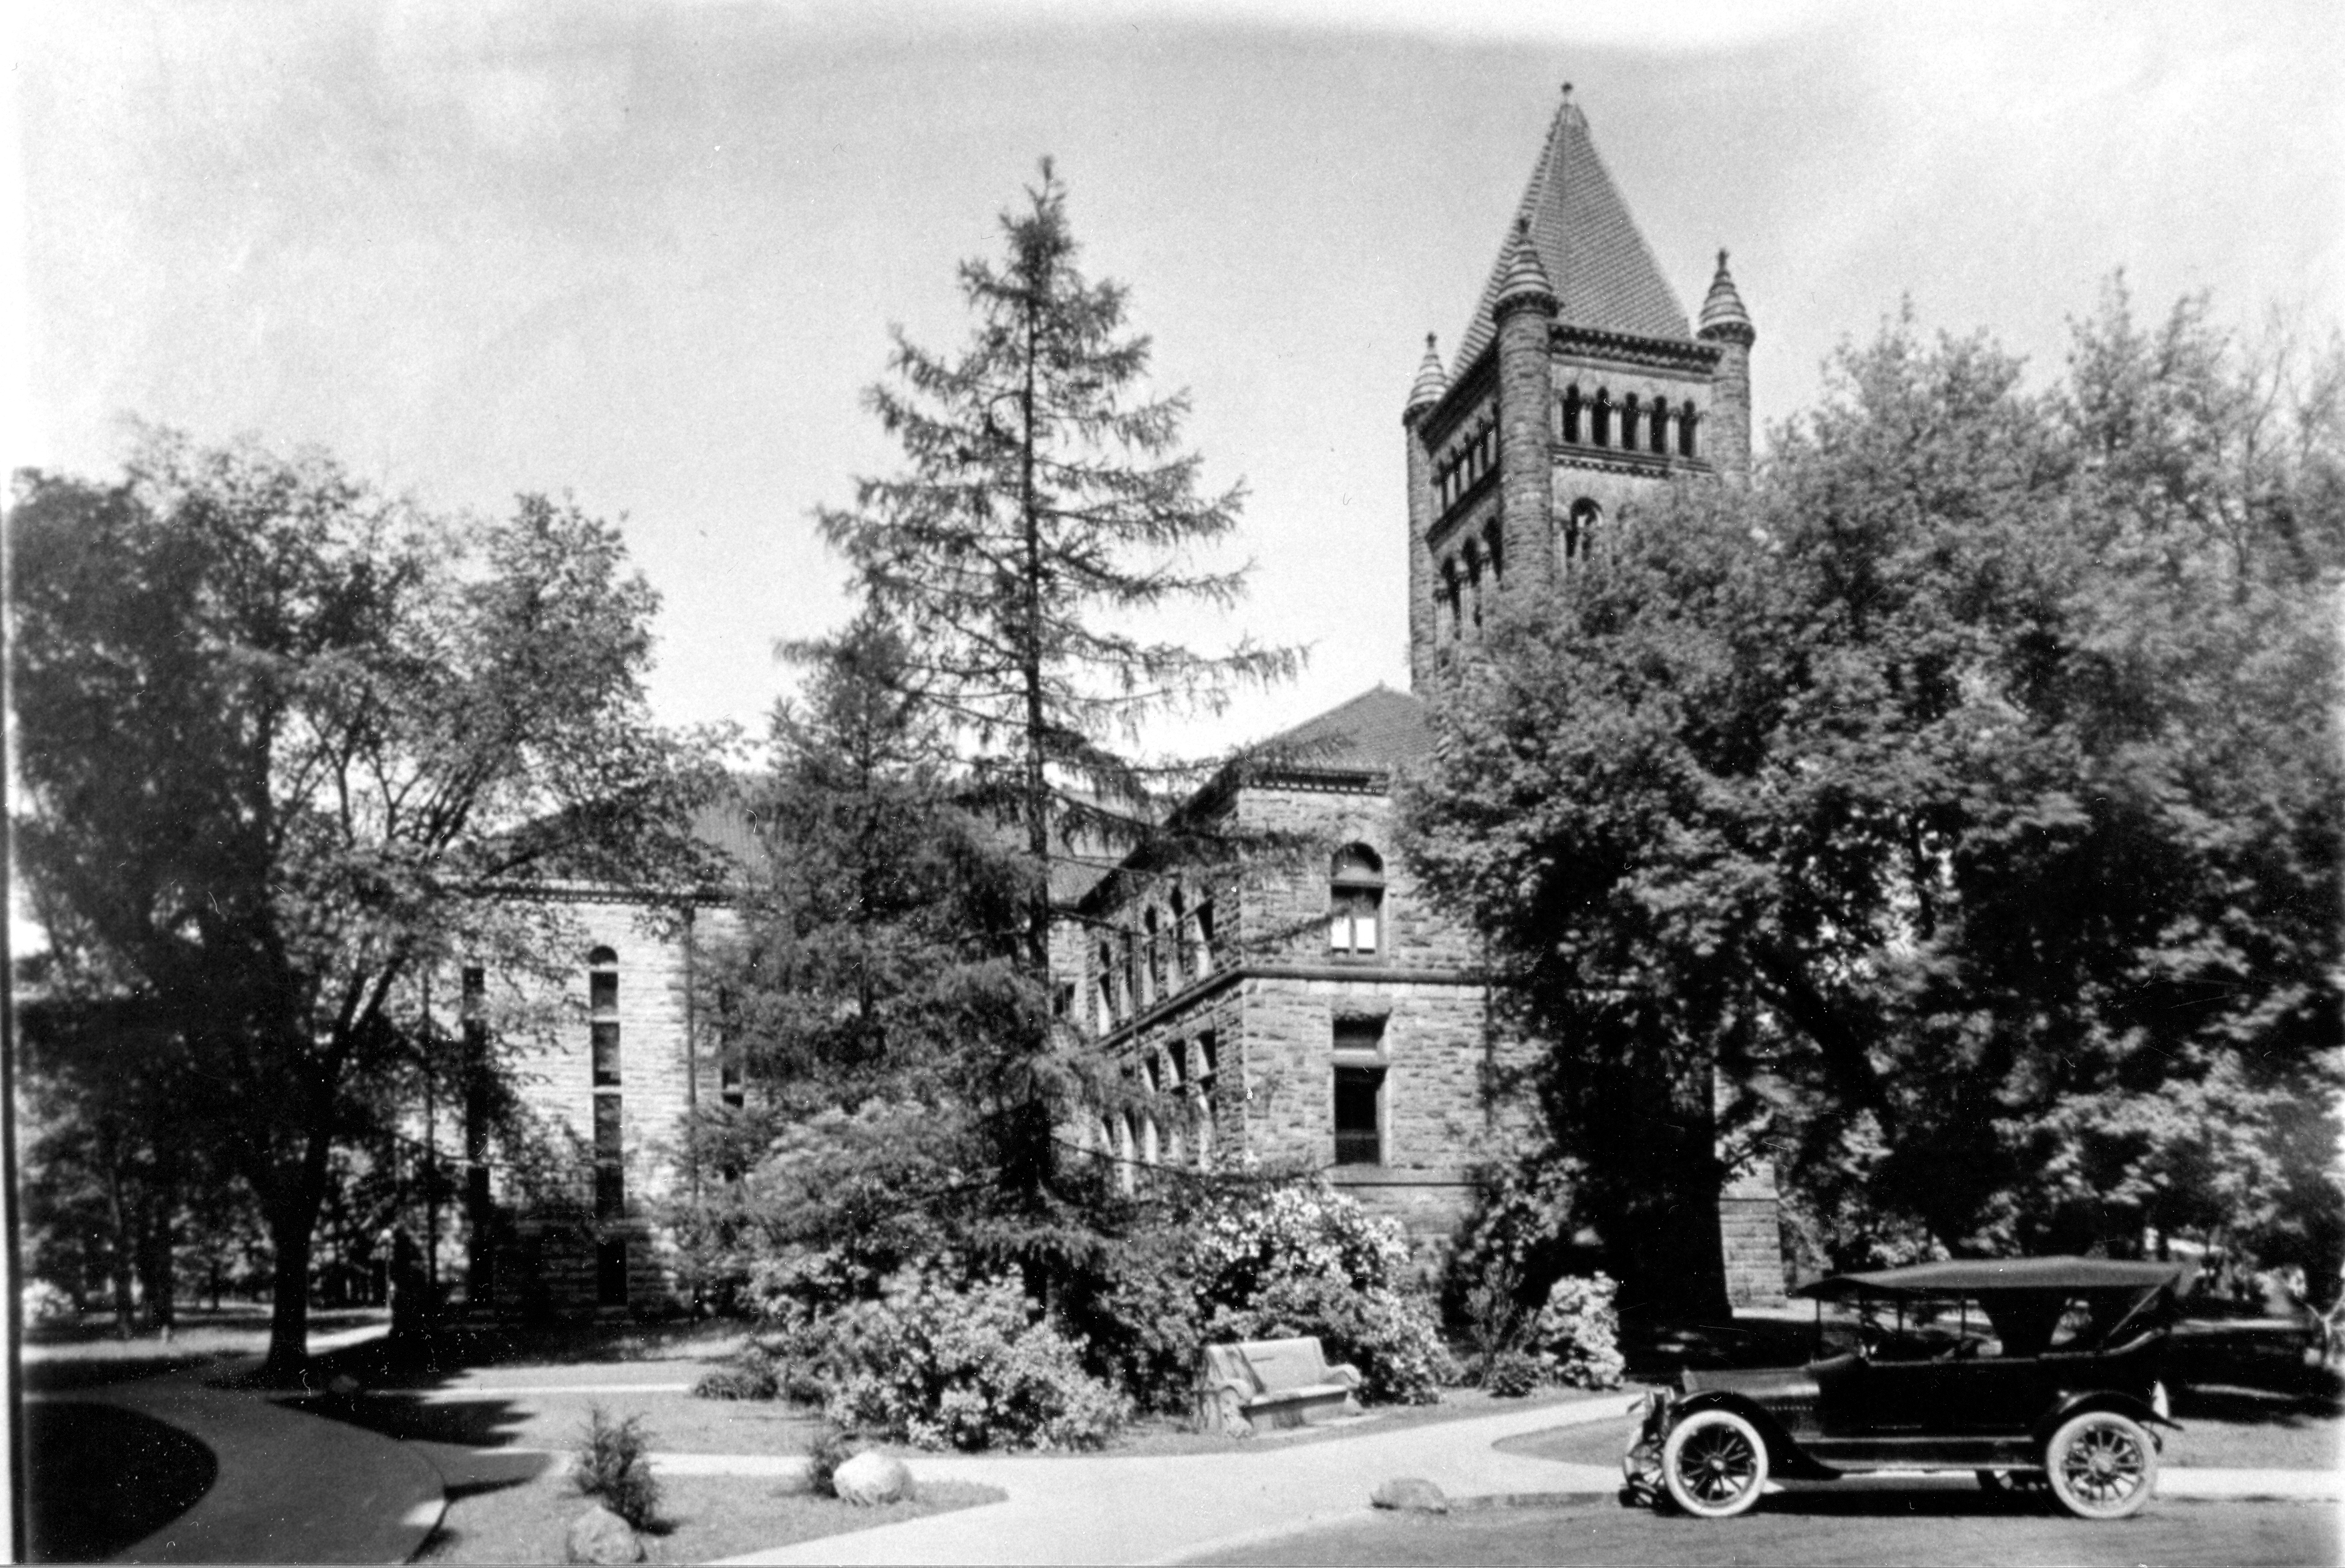 Altgeld Hall in 1915